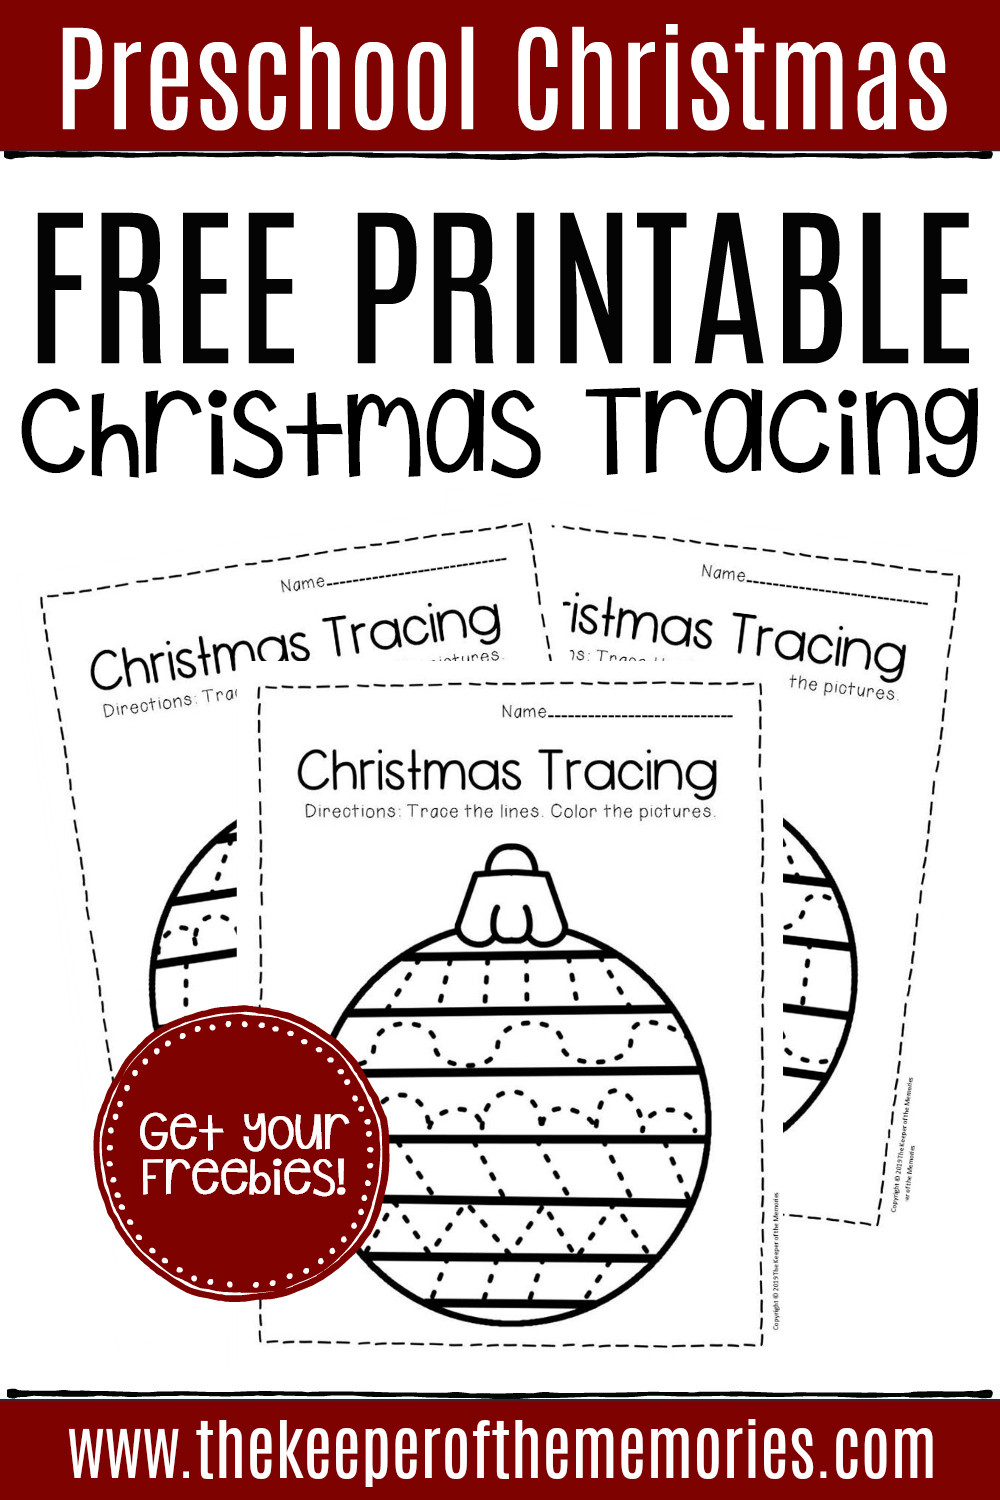 Christmas Worksheets for Preschoolers Free Printable Tracing Christmas Preschool Worksheets